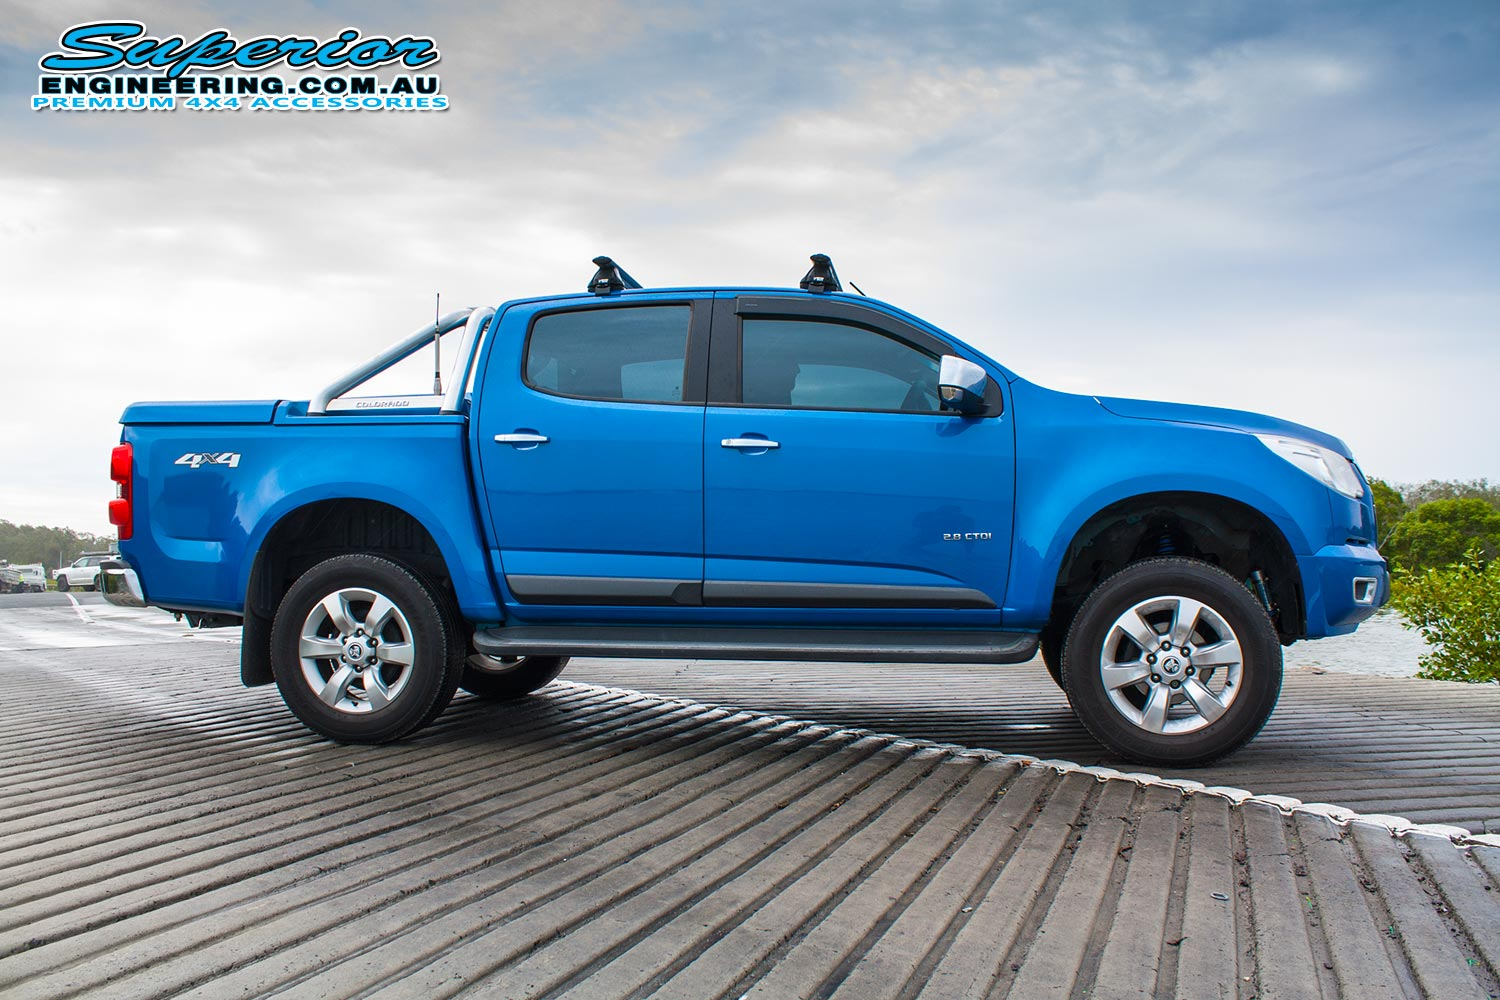 Right side view of a blue Holden Colorado RG Dual Cab fitted with a 4 Inch Premium Superior Engineering lift kit